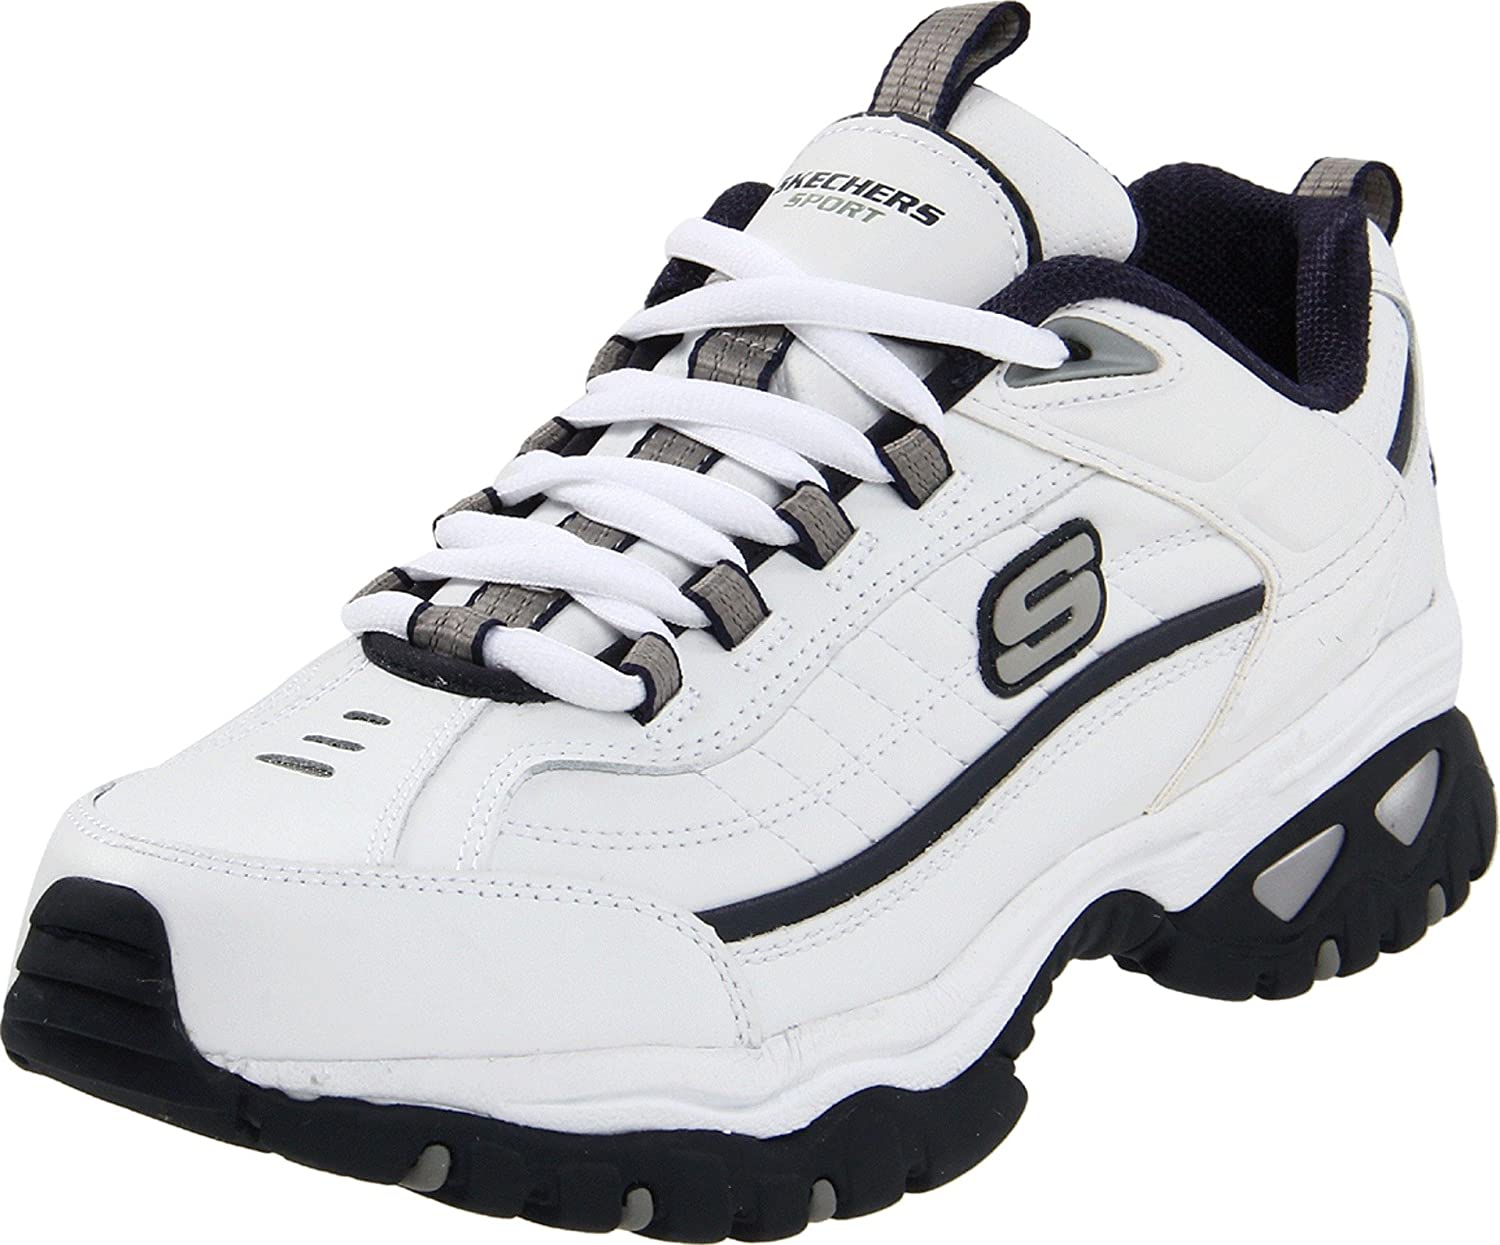 Skechers Sport Men's Energy Afterburn Lace Up skechers кроссовки женские skechers flex appeal 2 0 high energy